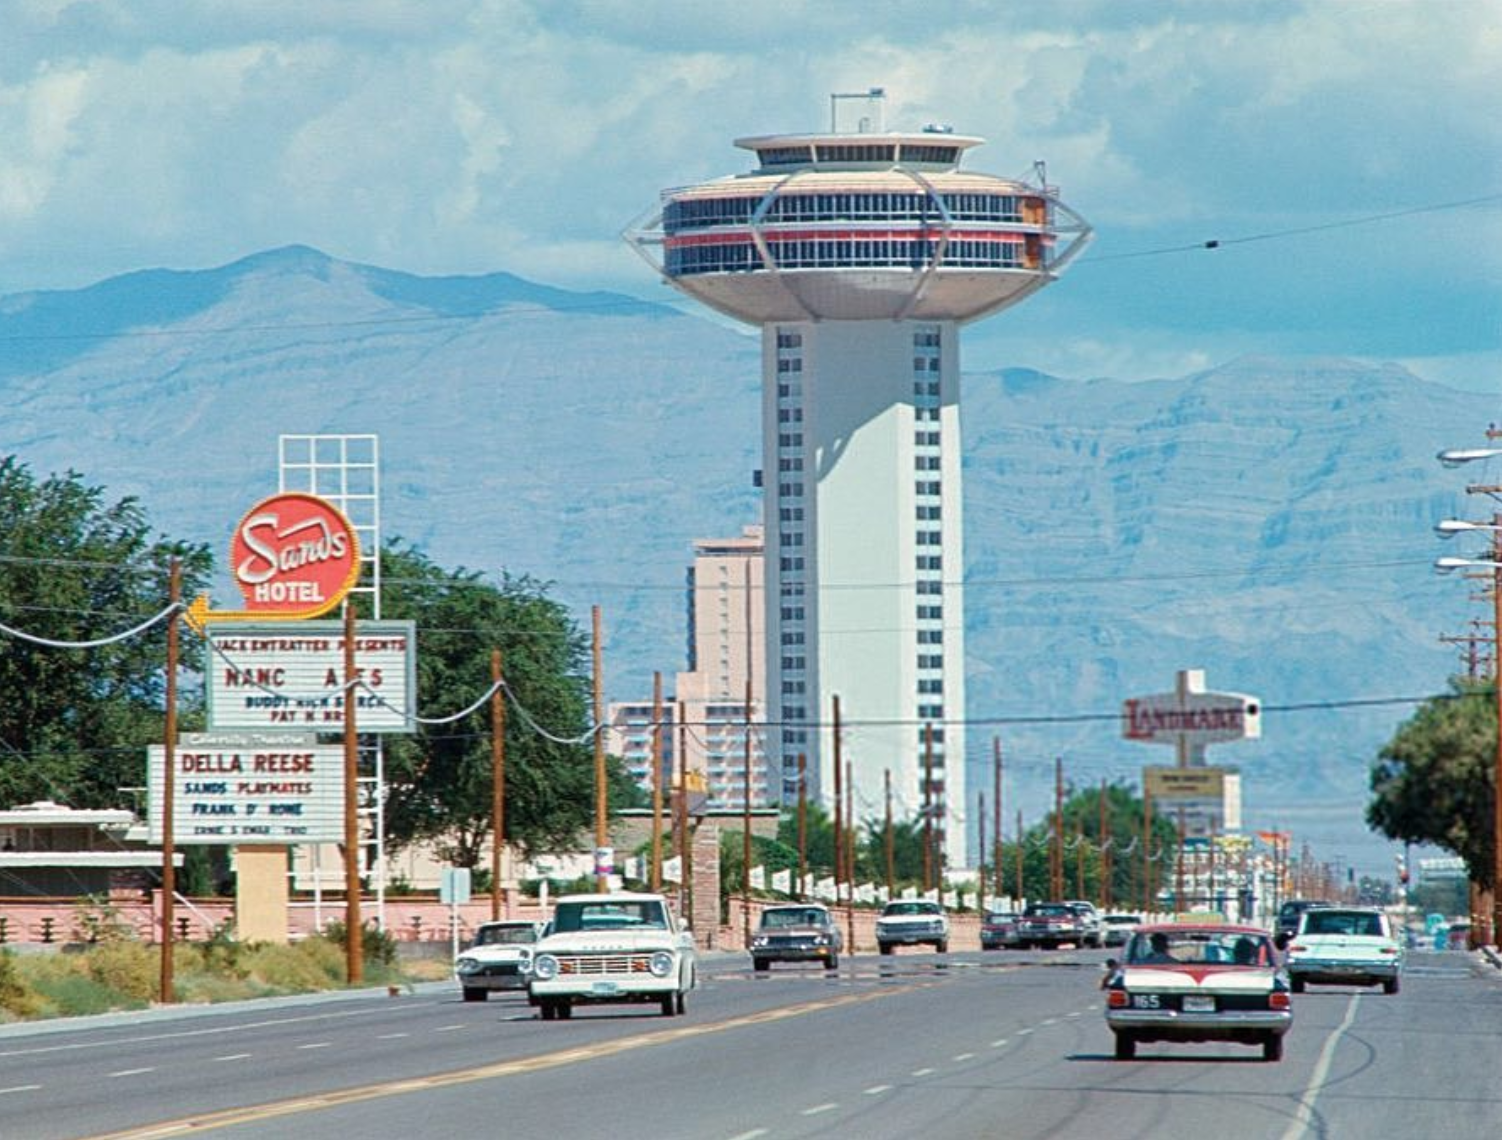 Paradise Rd, July 1967. The Landmark is unfinished, still two years from opening. Turn left to get to the Sands. Nancy Ames, Della Reese performing. Unknown photographer.    #vintagevegas    © Vintage Las Vegas Instagram